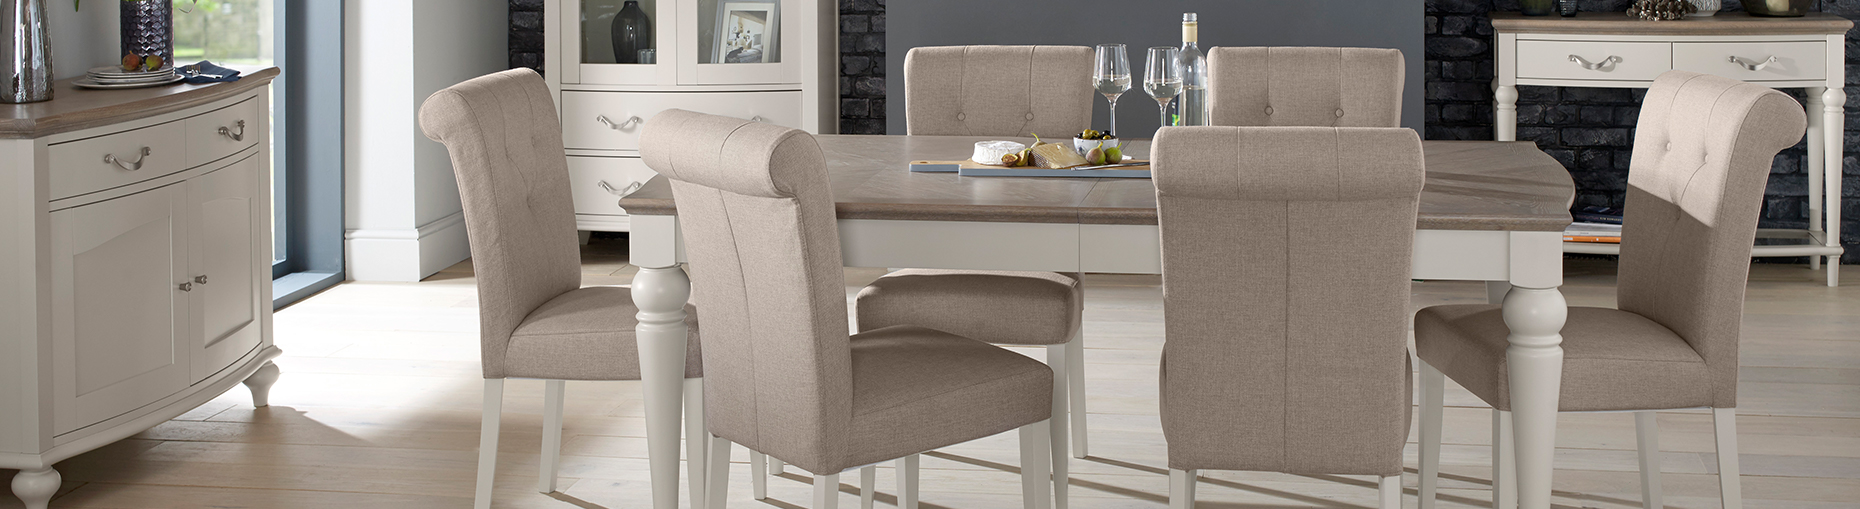 Cannes dining collection at Forrest Furnishing